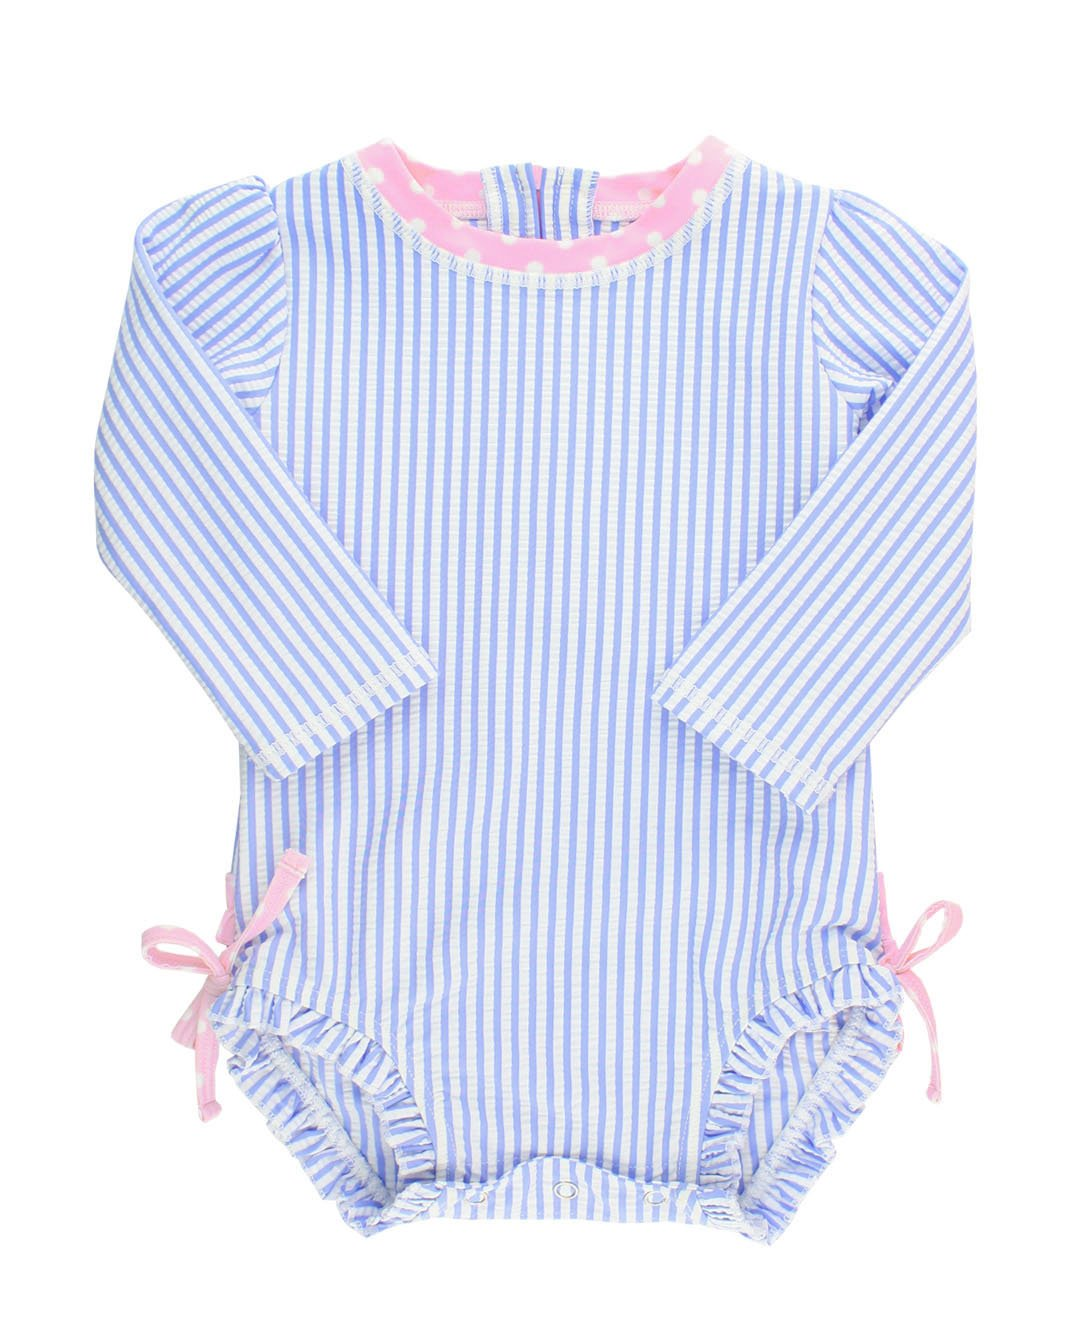 RuffleButts Baby/Toddler Girls Long Sleeve One Piece Swimsuit - Blue Seersucker with UPF 50+ Sun Protection - 12-18m